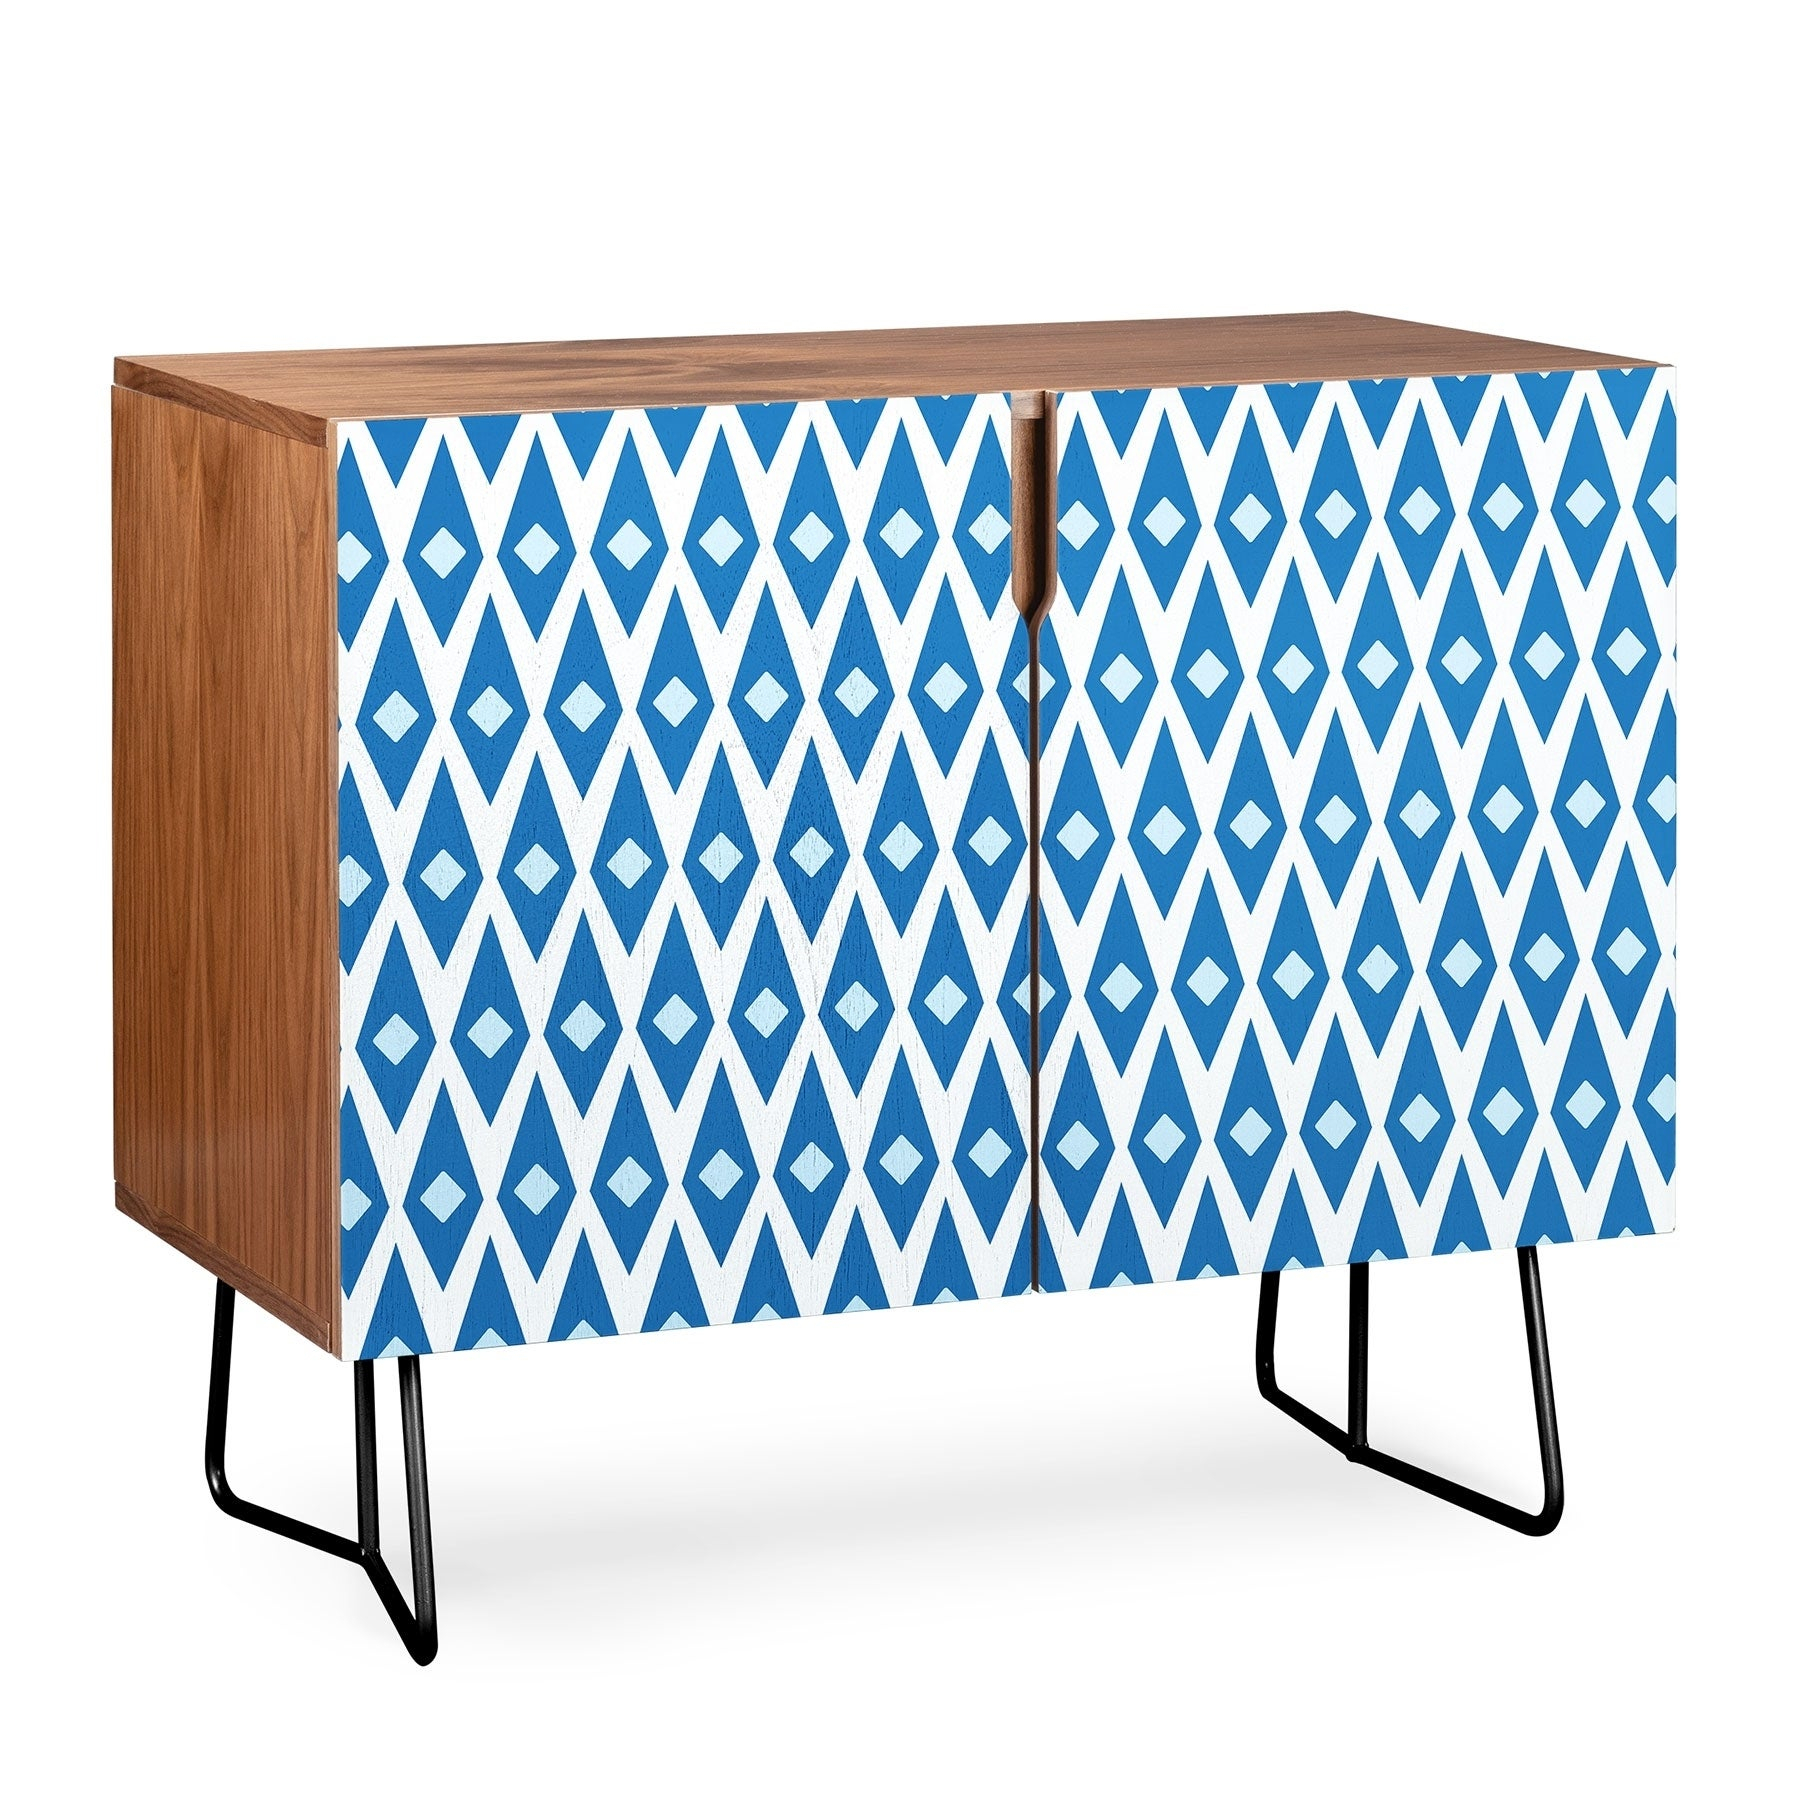 Deny Designs Paragon Credenza (Birch Or Walnut, 2 Leg Options) Inside Bluetrellis Credenzas (Photo 23 of 30)